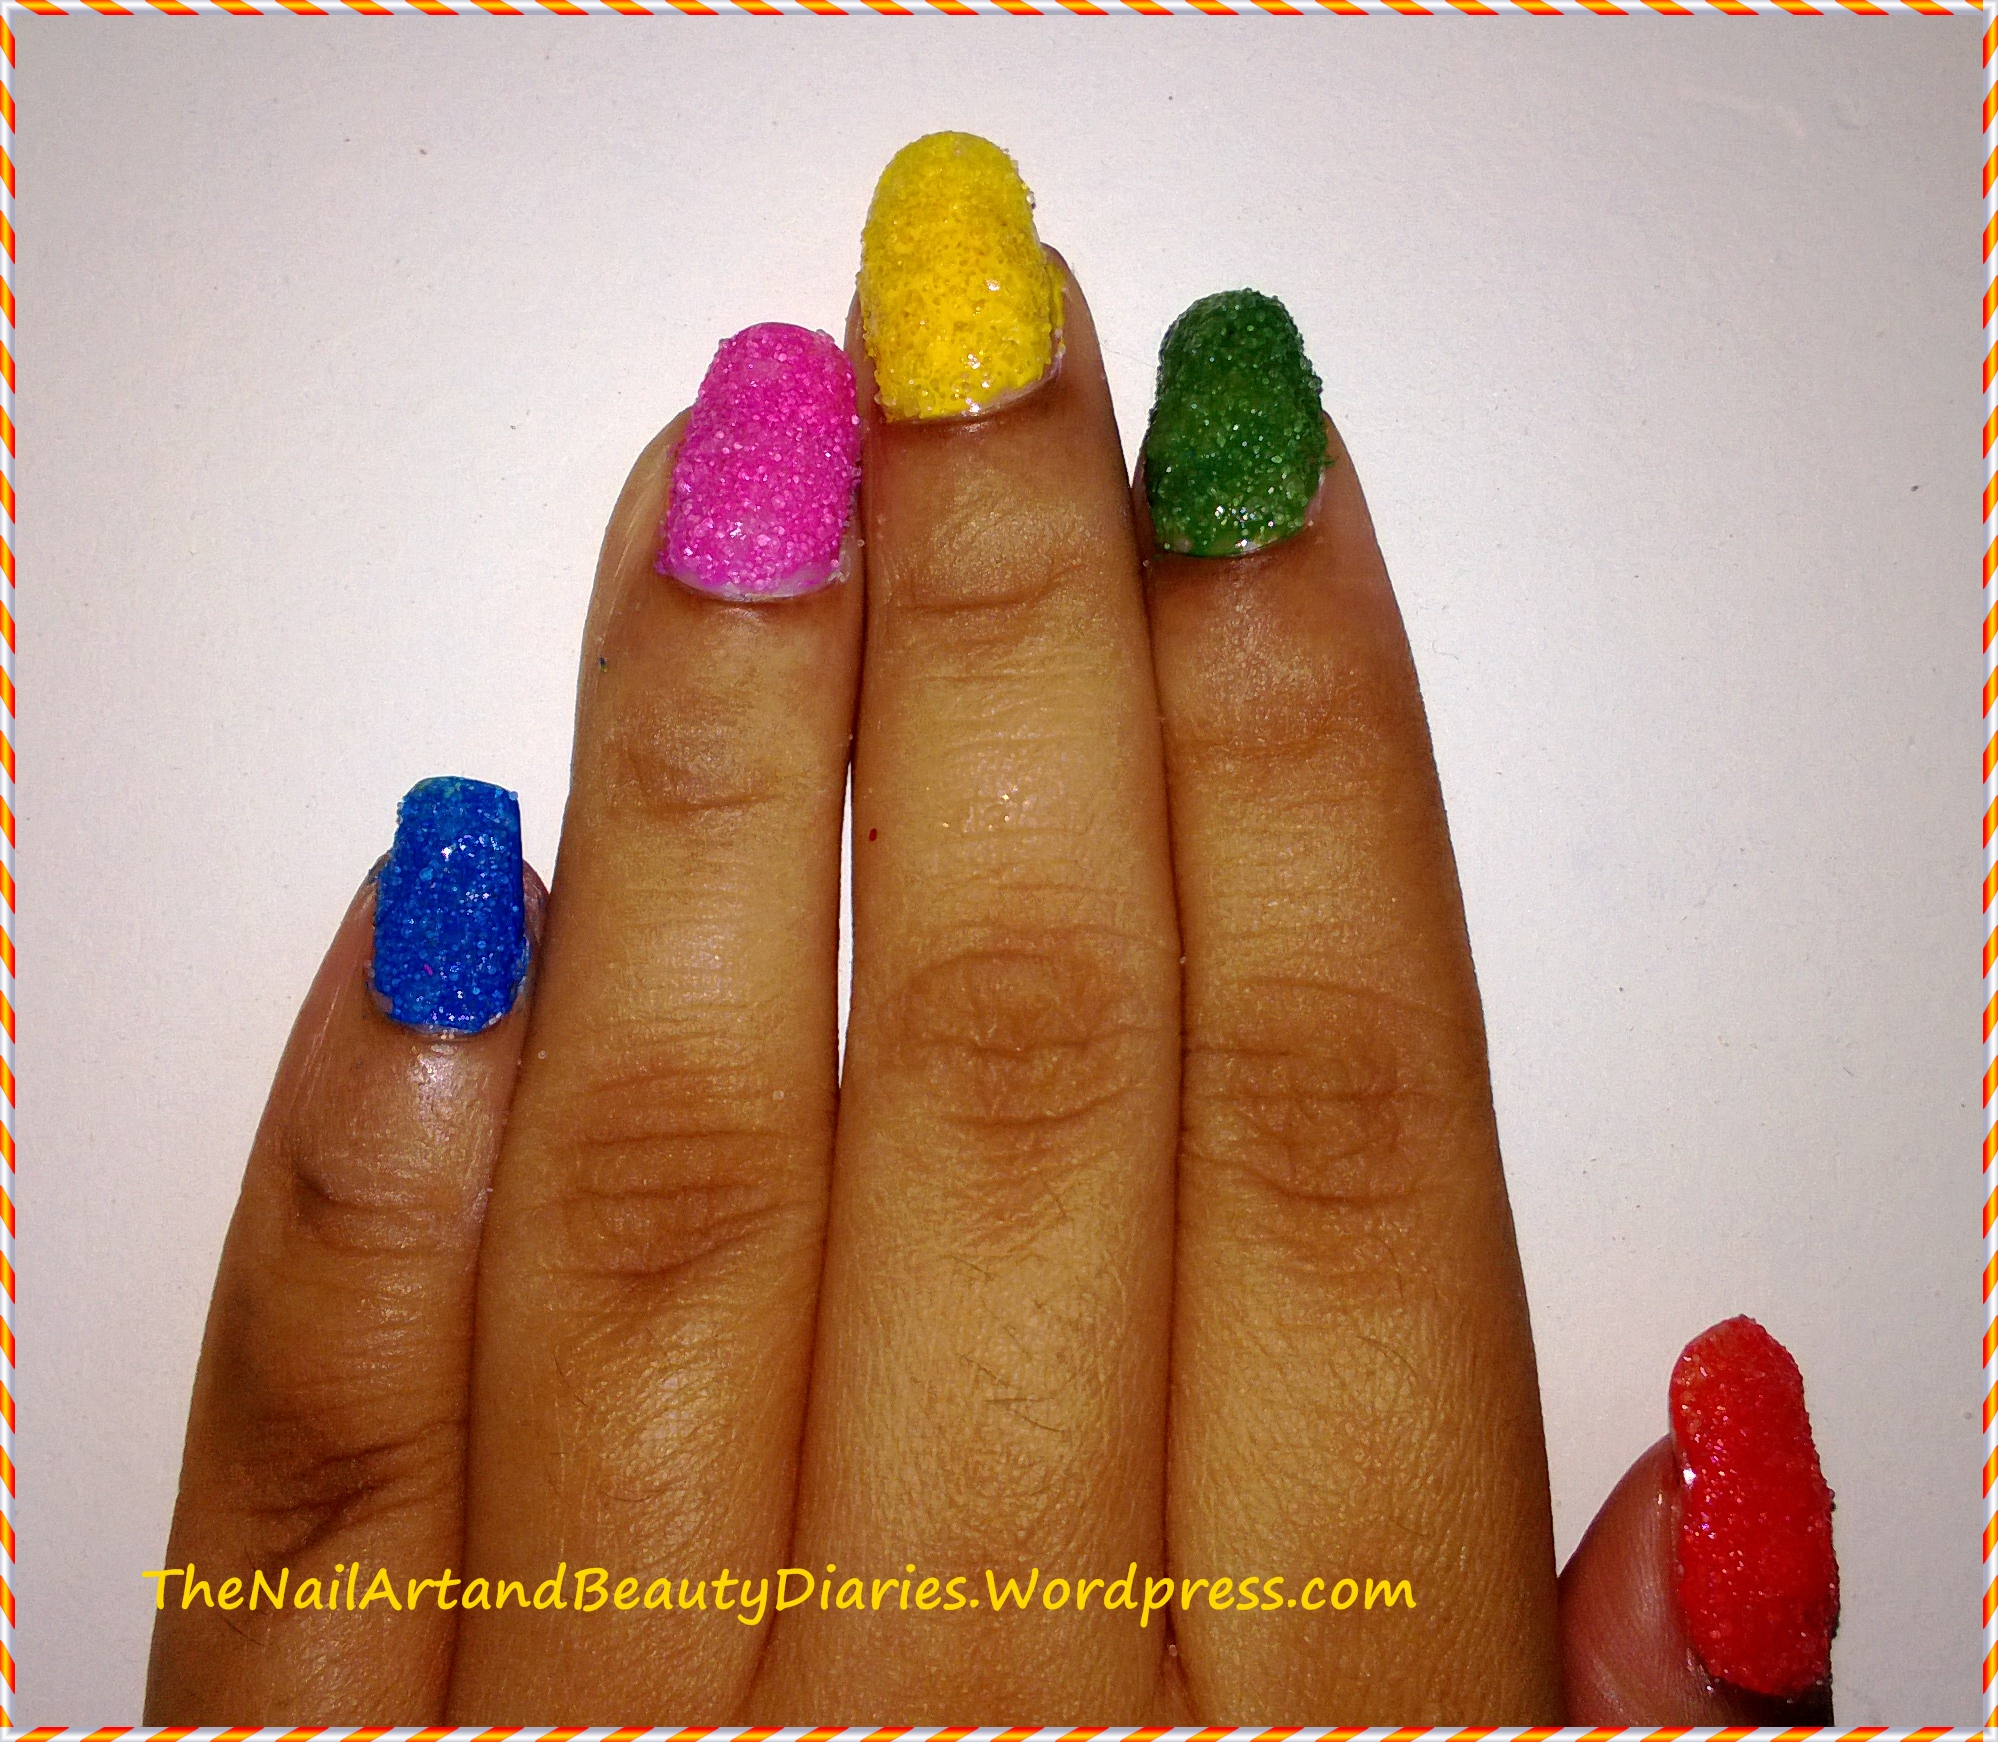 The Nail Art And Beauty Diaries: Easy At Home Nail Art 27 : DIY Summer Textured Nails With